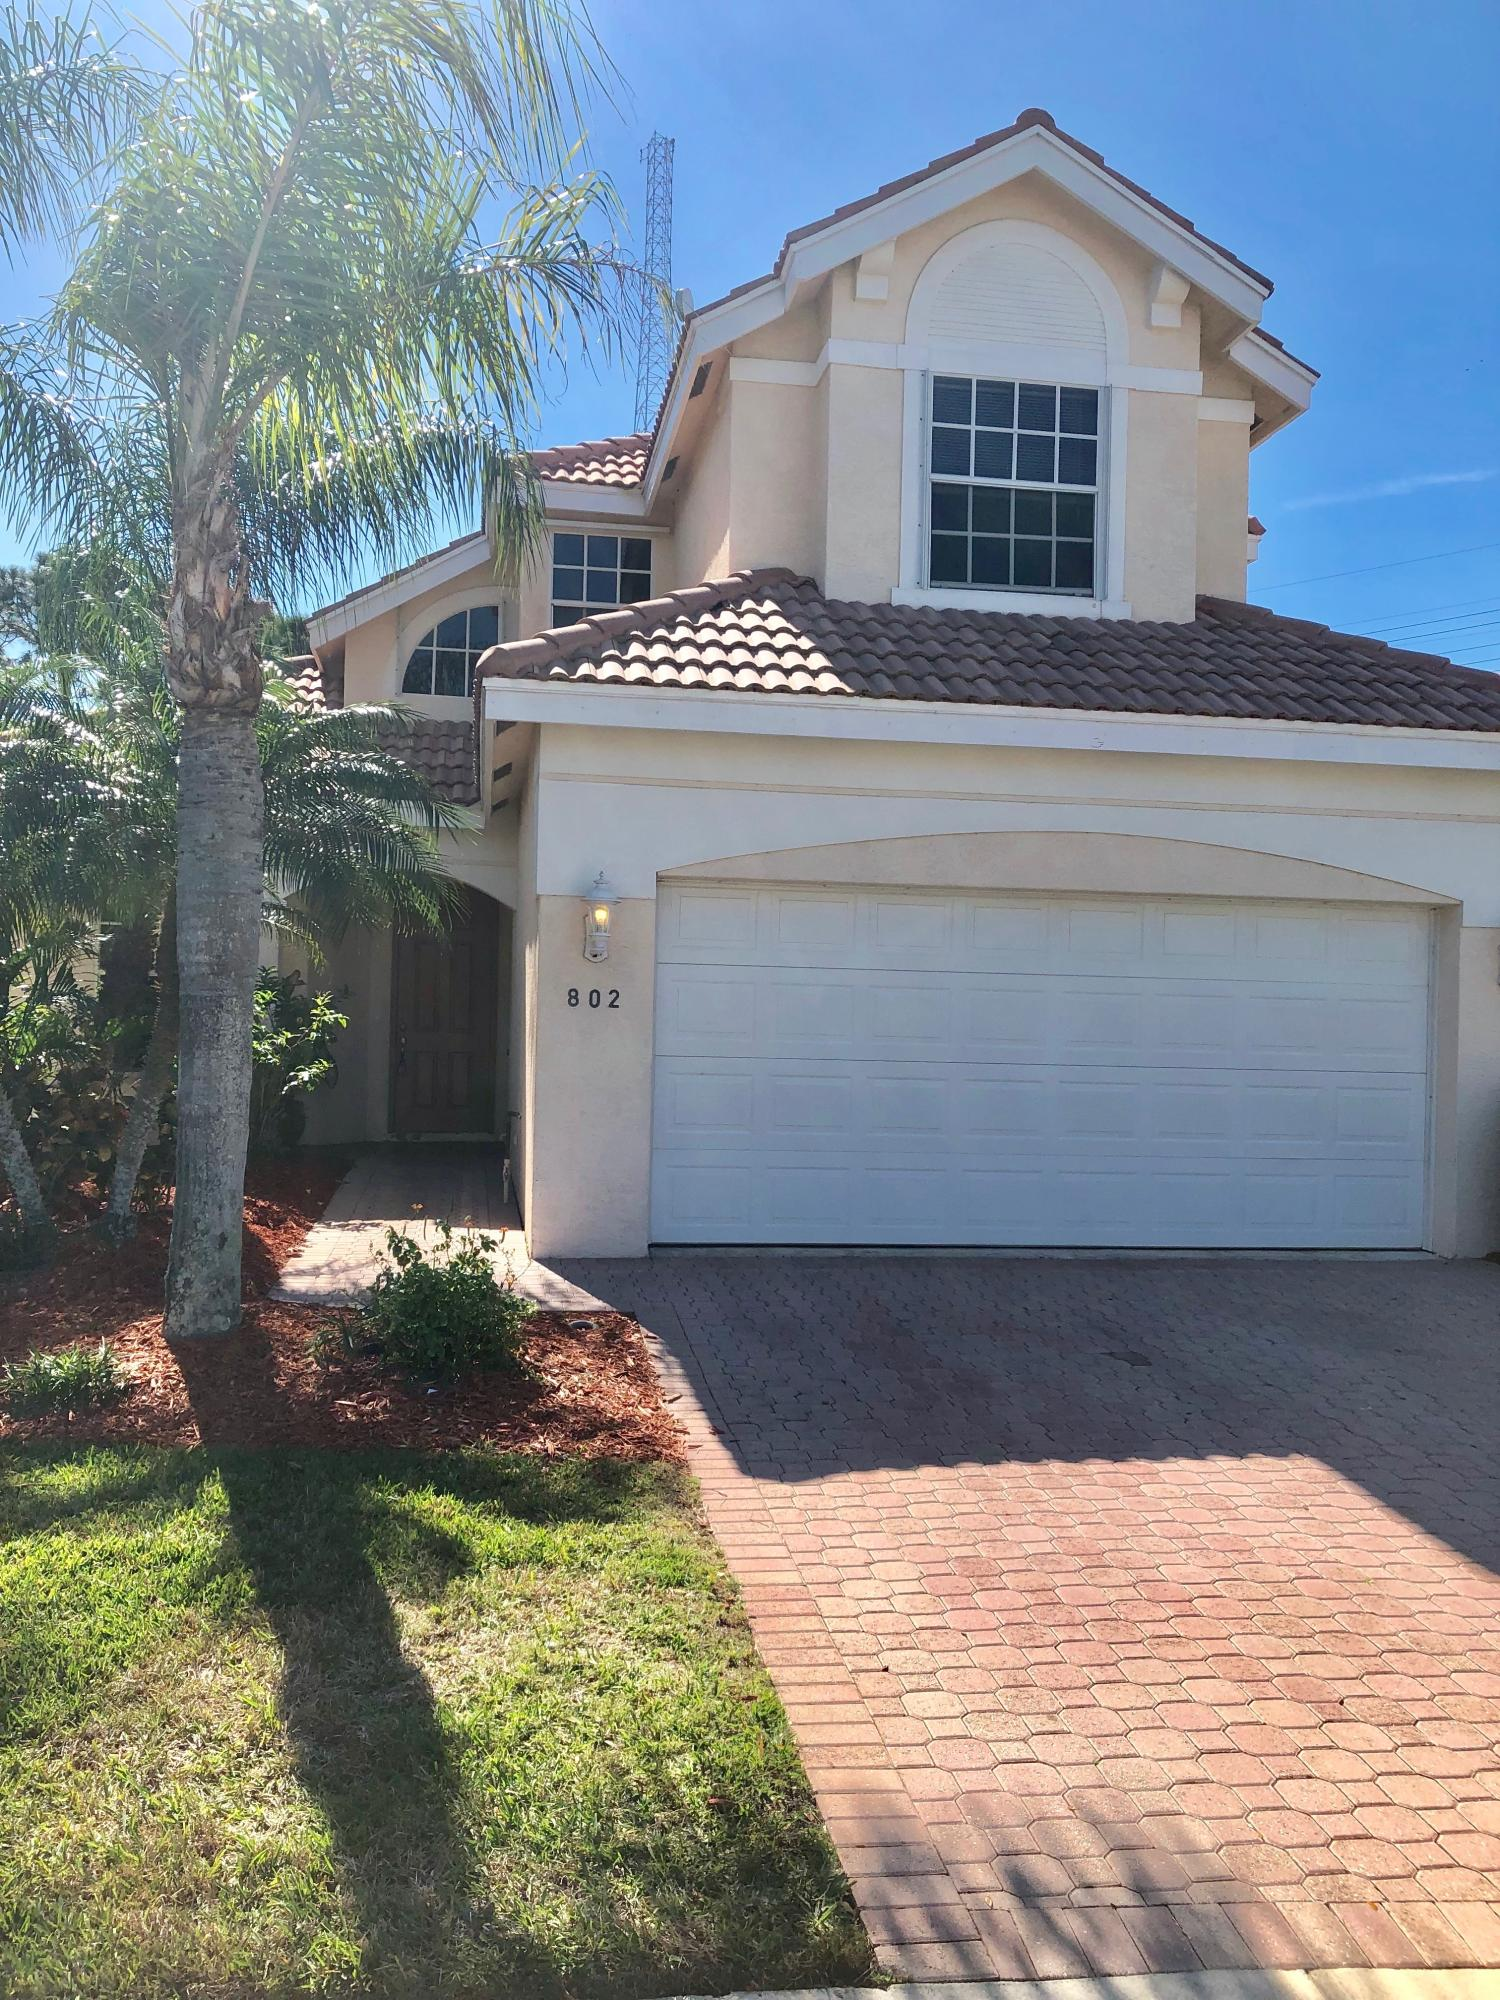 802 SW Munjack Circle, Port Saint Lucie, Florida